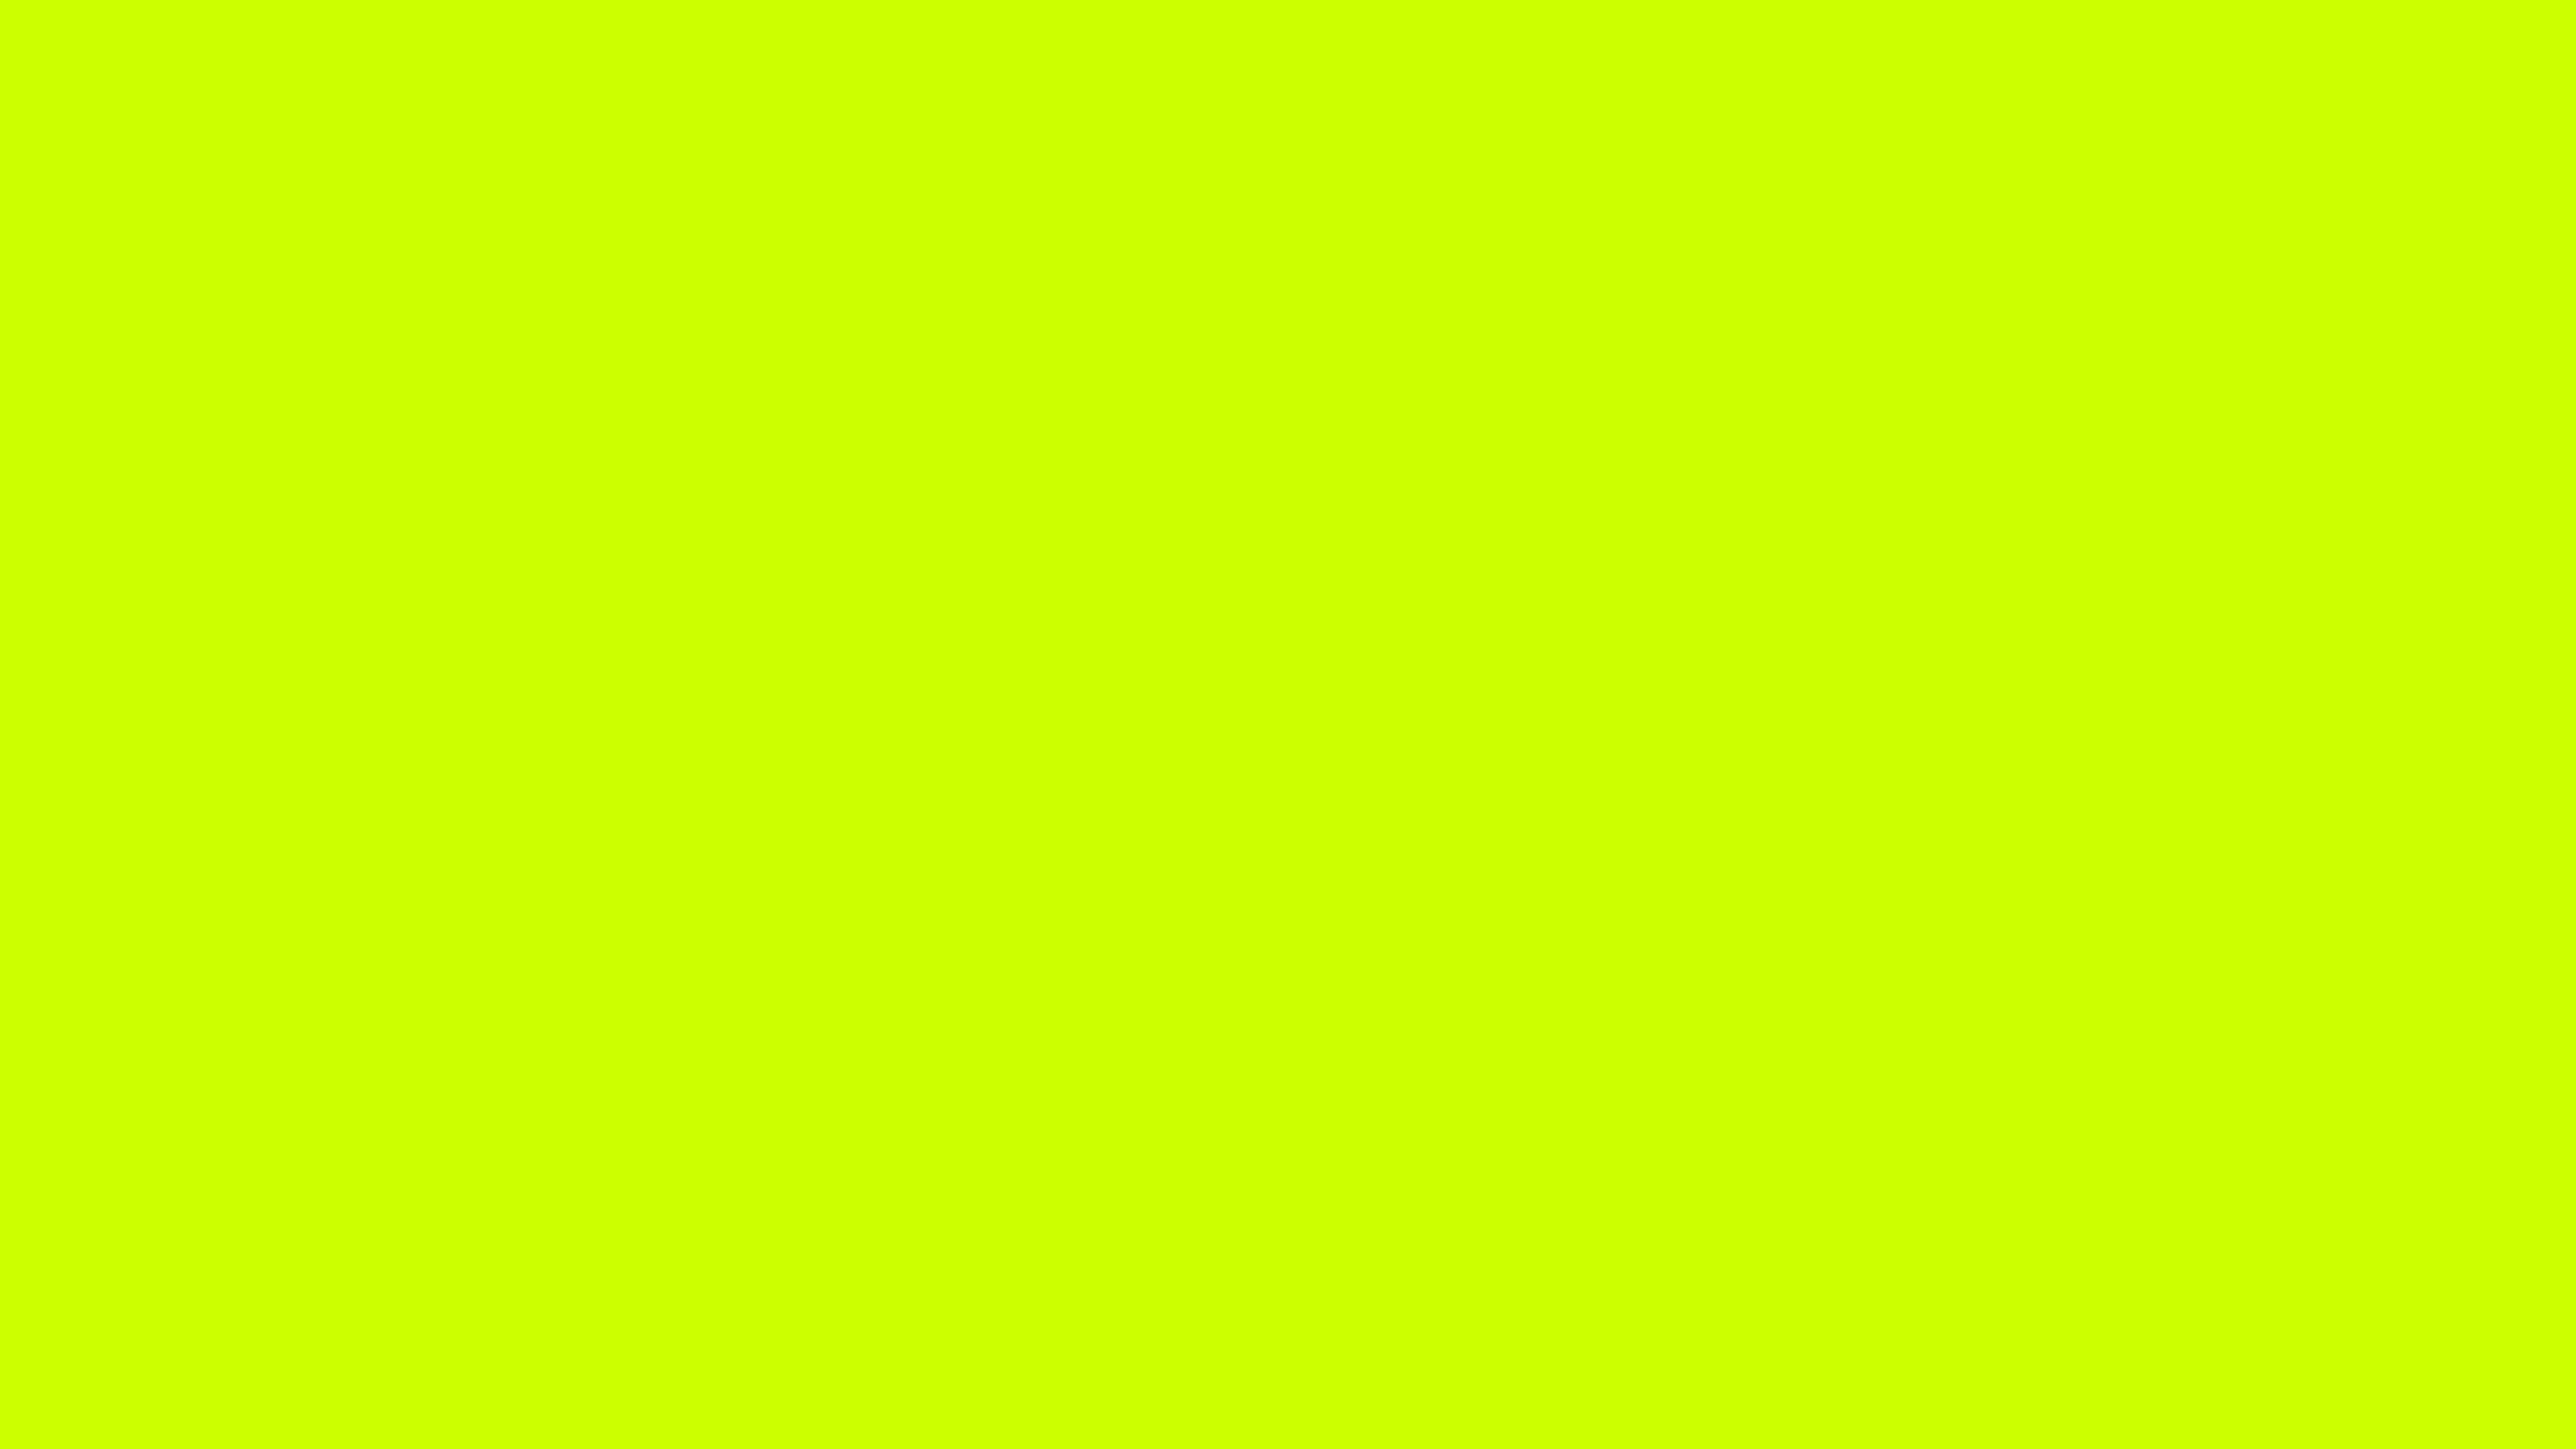 3840x2160 Electric Lime Solid Color Background